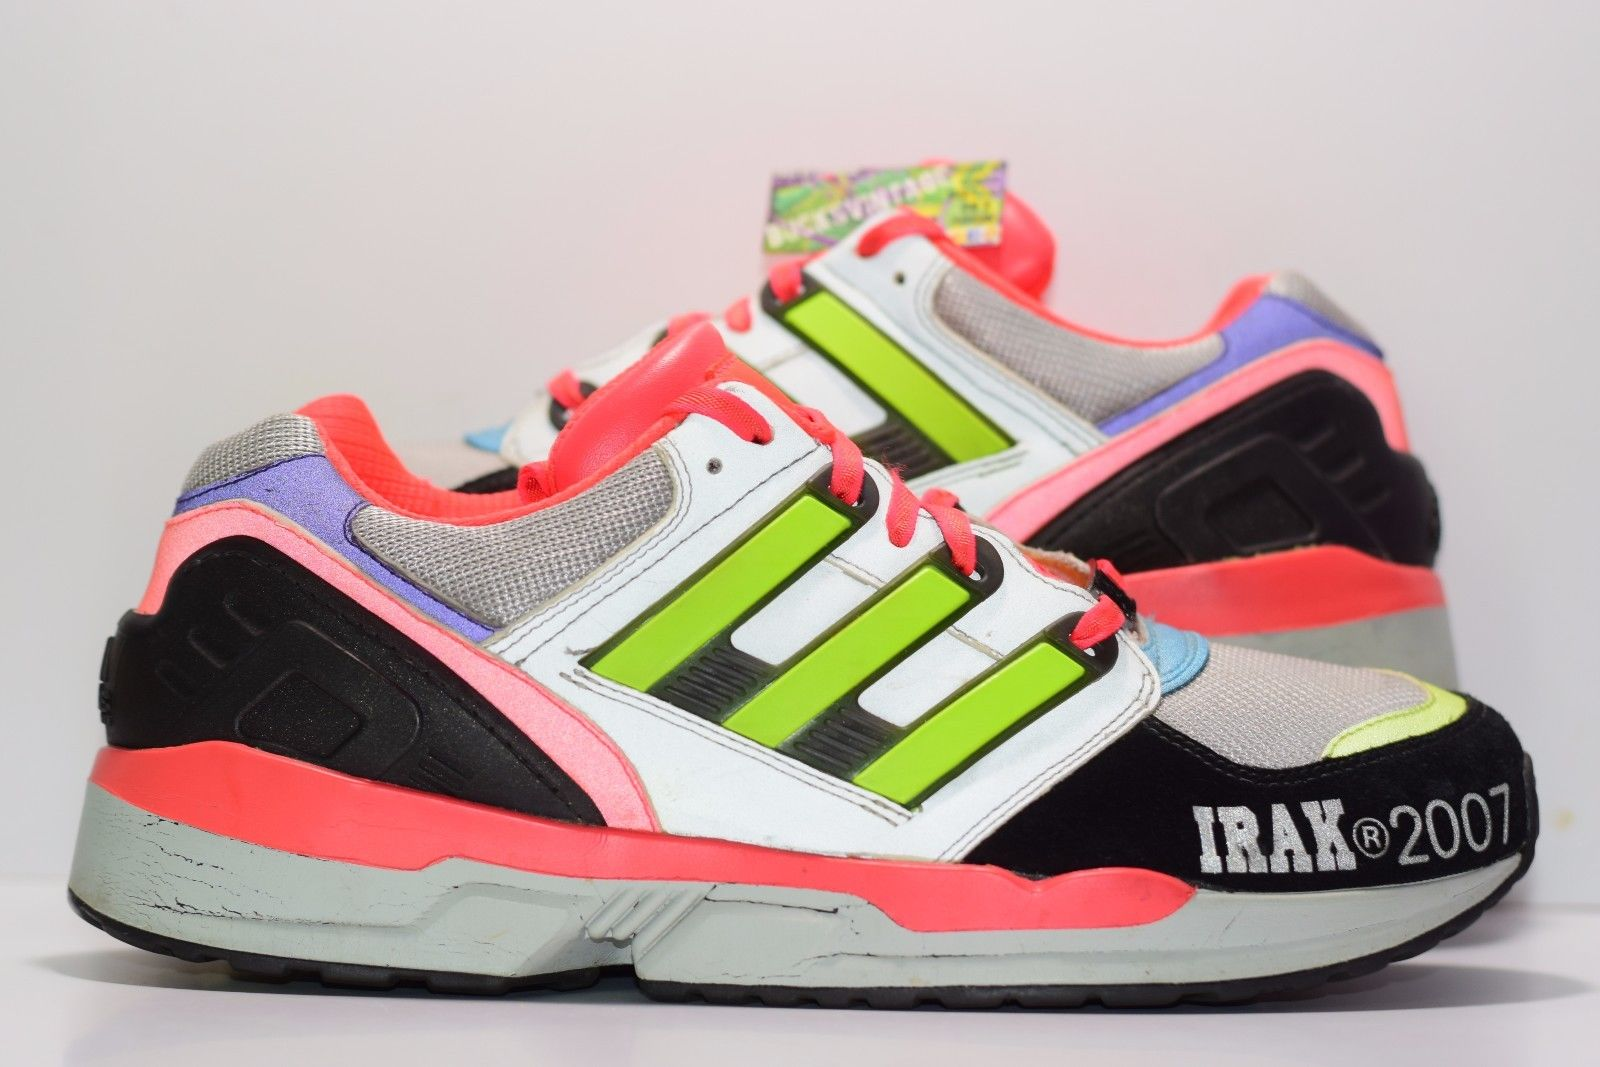 wholesale dealer cf196 f6653 Size 9  2007 Adidas RMX EQT IRAK ALIFE Running Shoes 3M on S